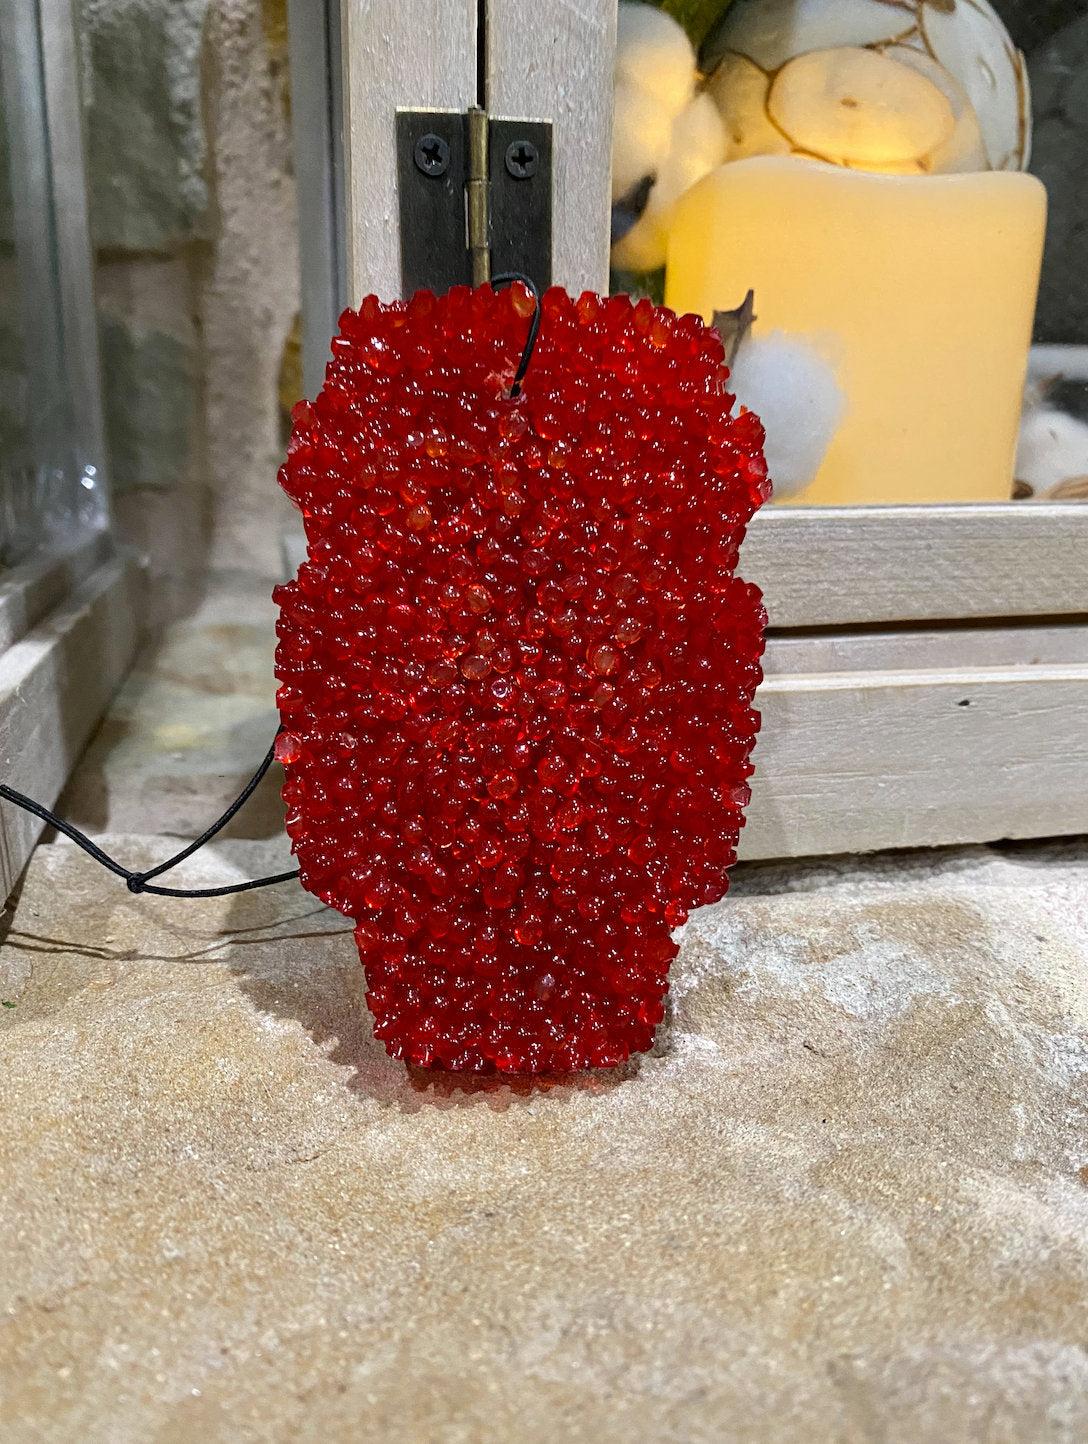 Car Scents - Ready To Ship - Car Freshener - Aroma Beads Scent - Hanging Air Freshener - Car Candles - Multiple Shapes Available